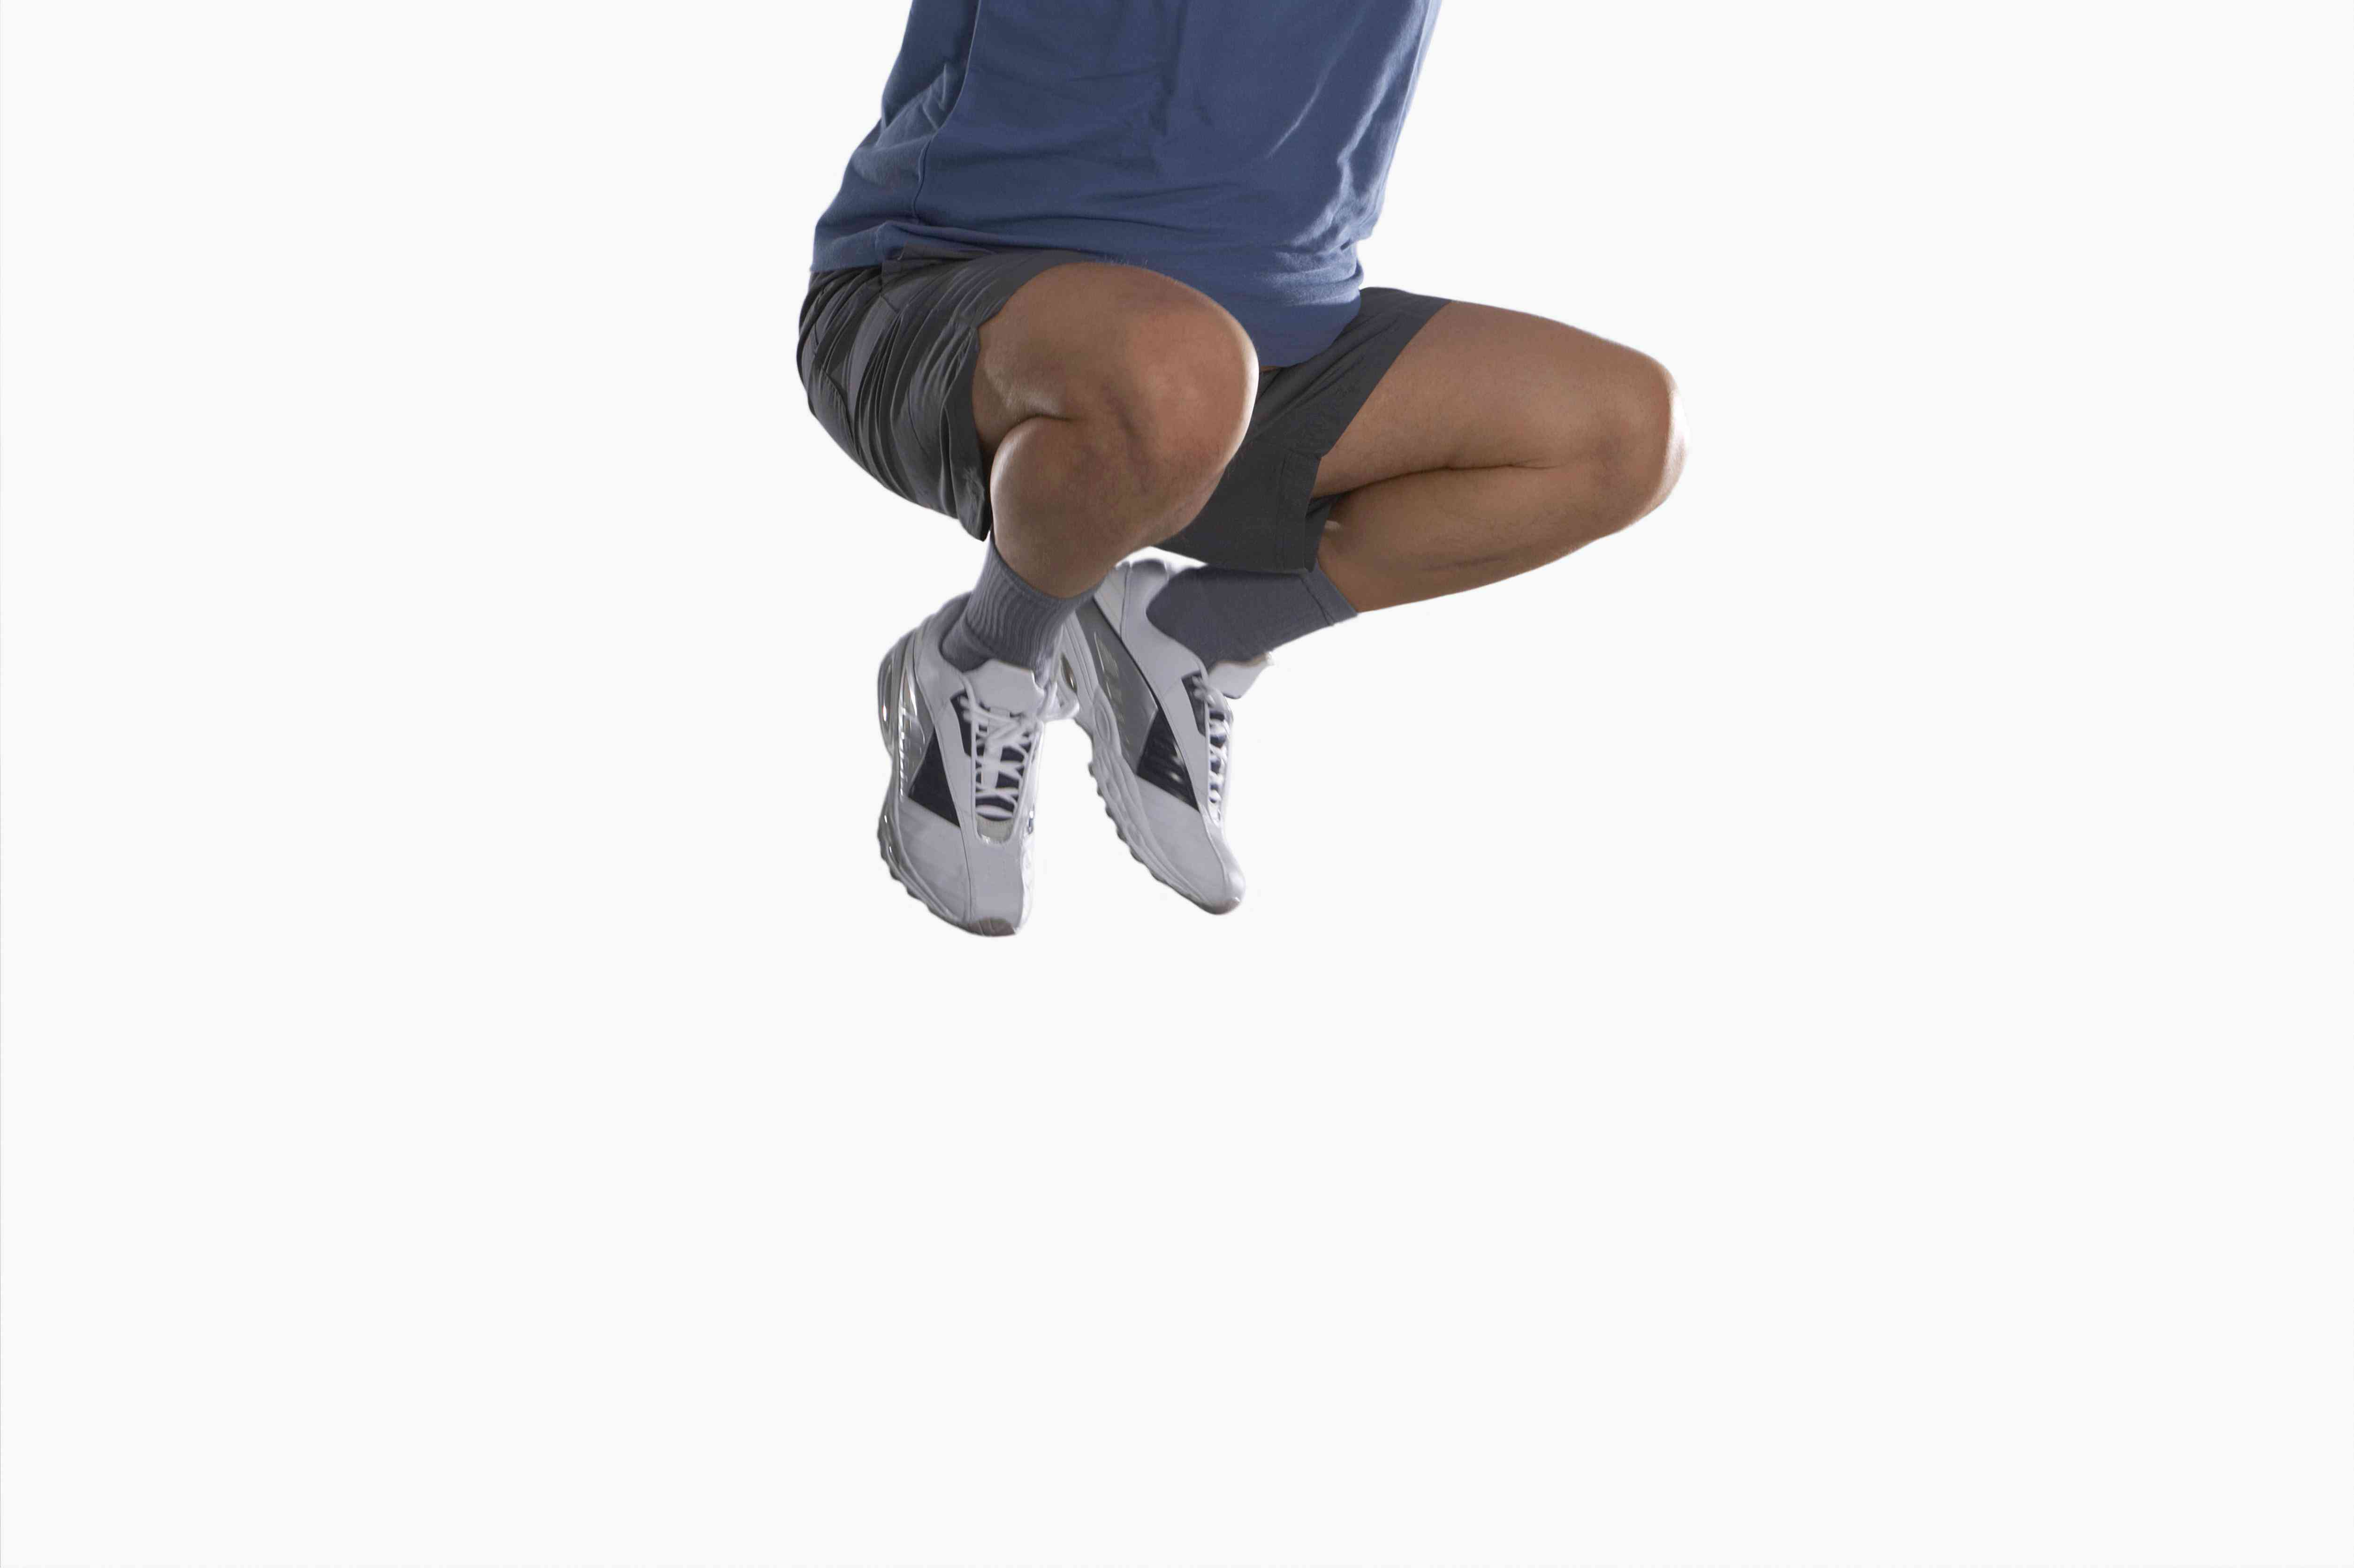 Man in athletic clothes jumping as high as he can on white background